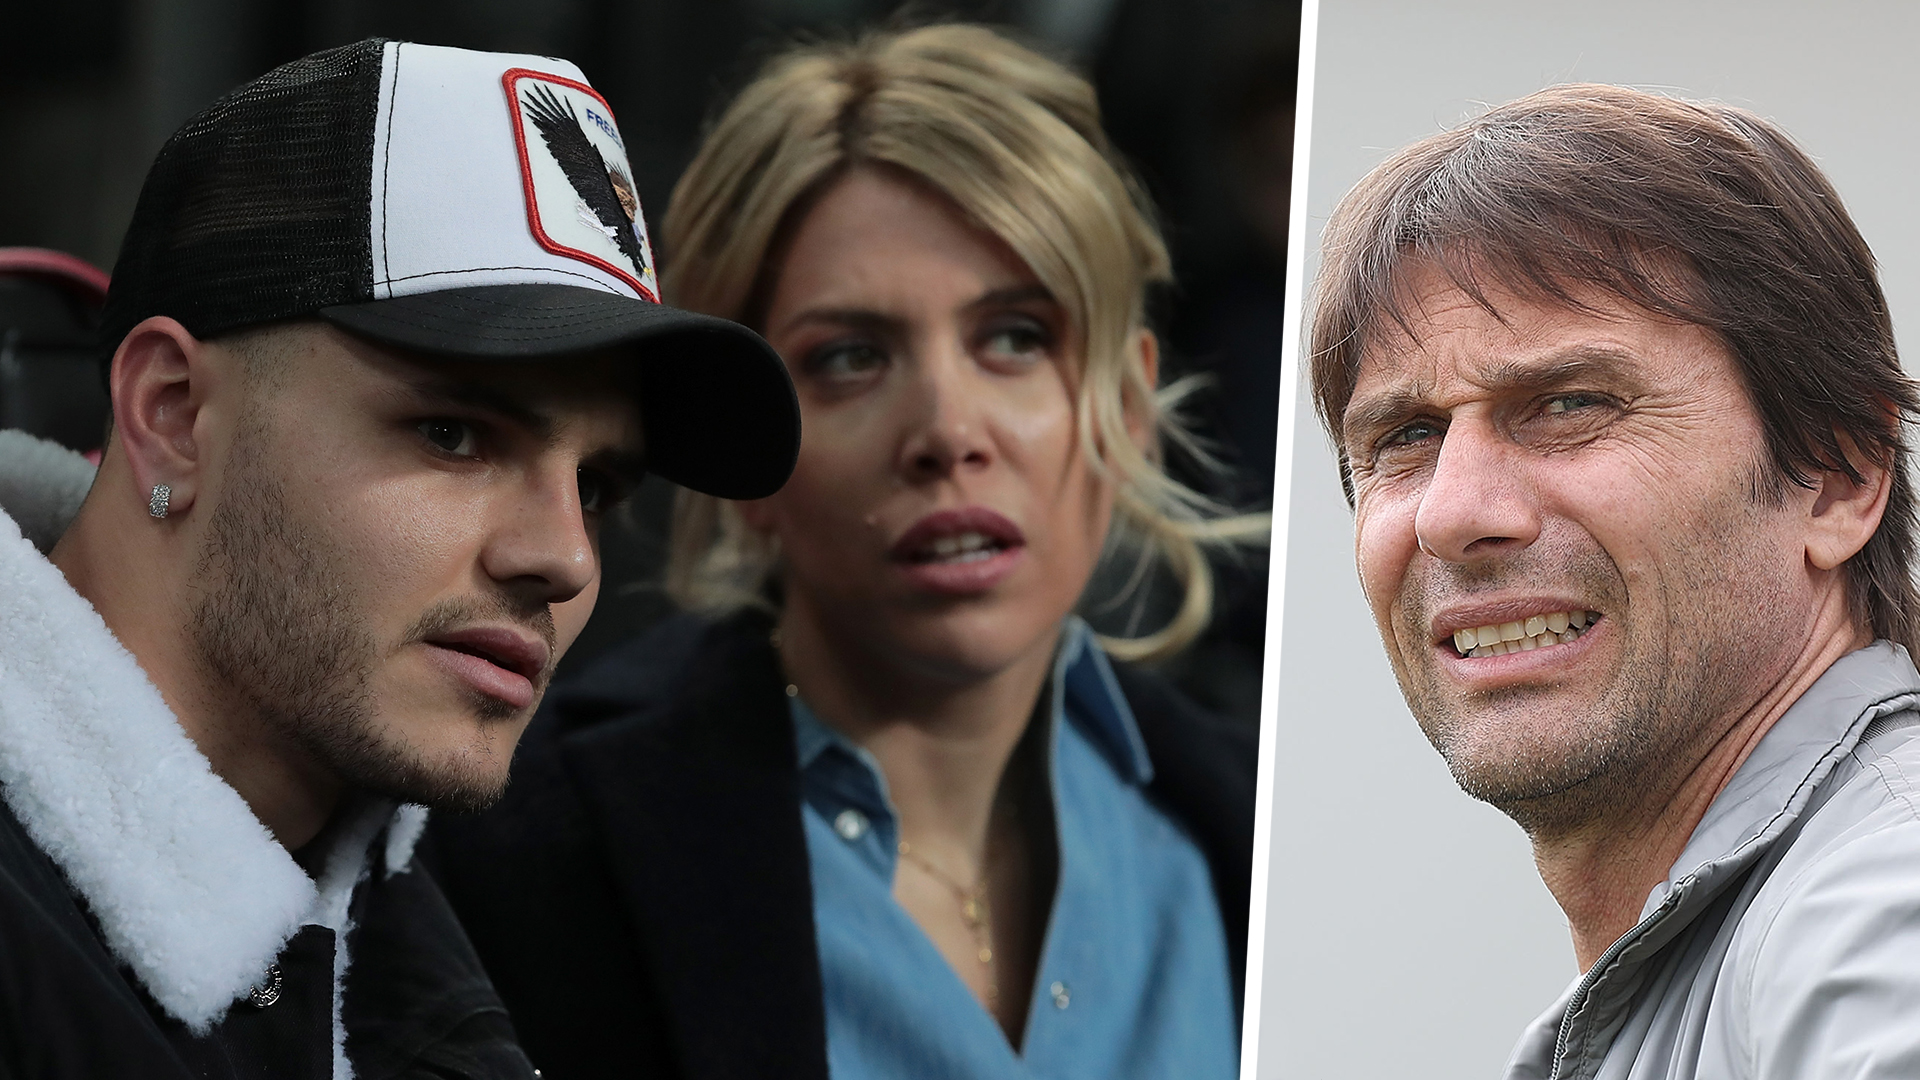 Outcasted by Conte, hated by fans – Icardi's long, bitter divorce from Inter